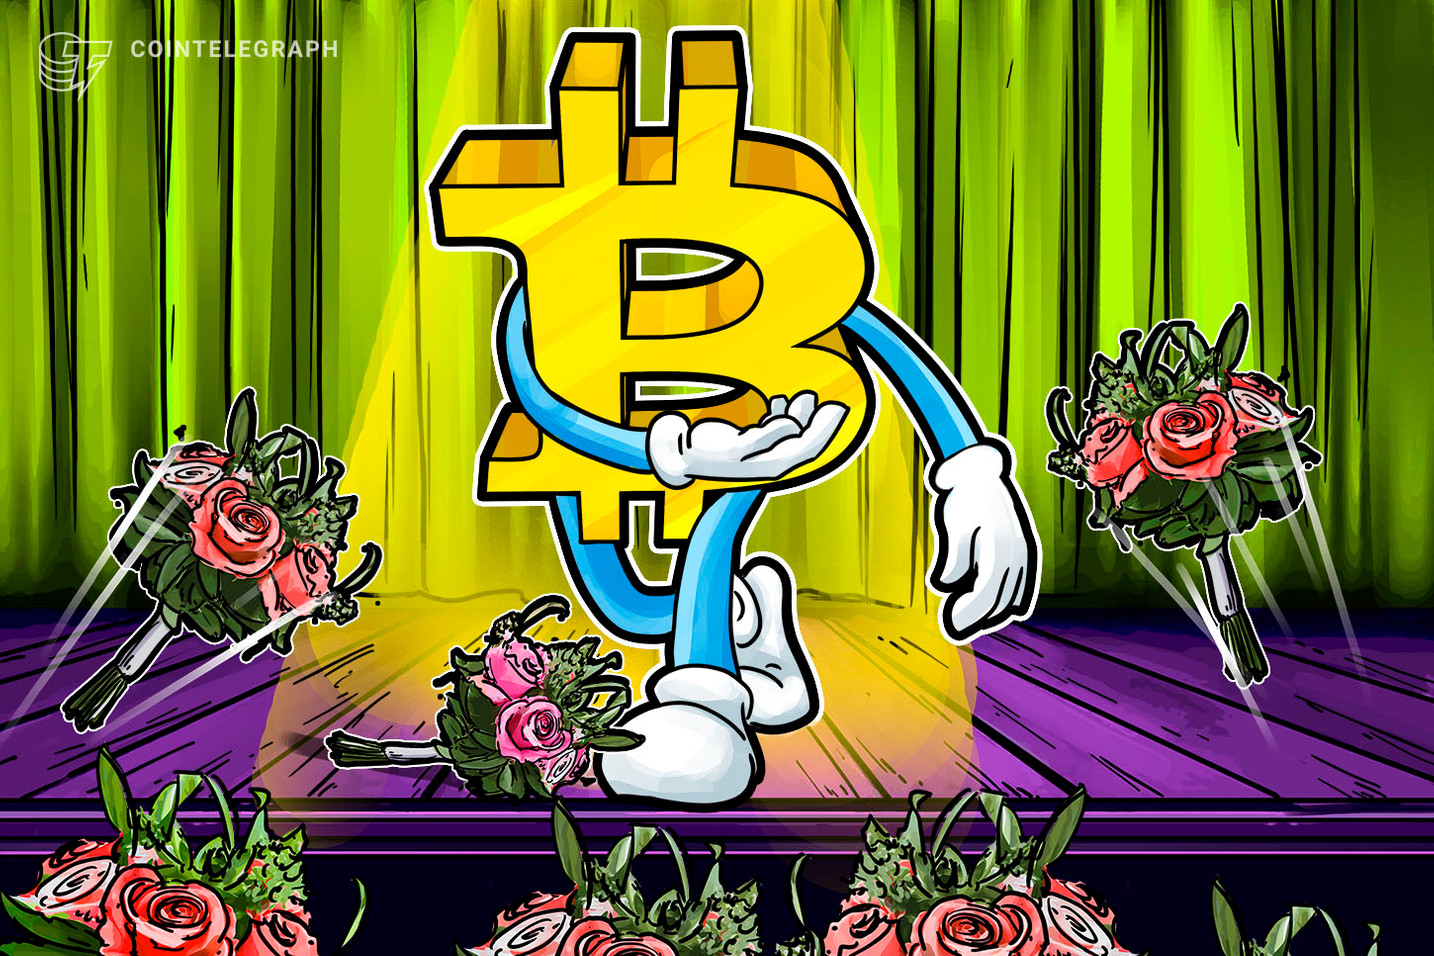 Bitcoin Reclaims $8K as Coins See Green, Experts Warn of Ominous Stock Market Volatility